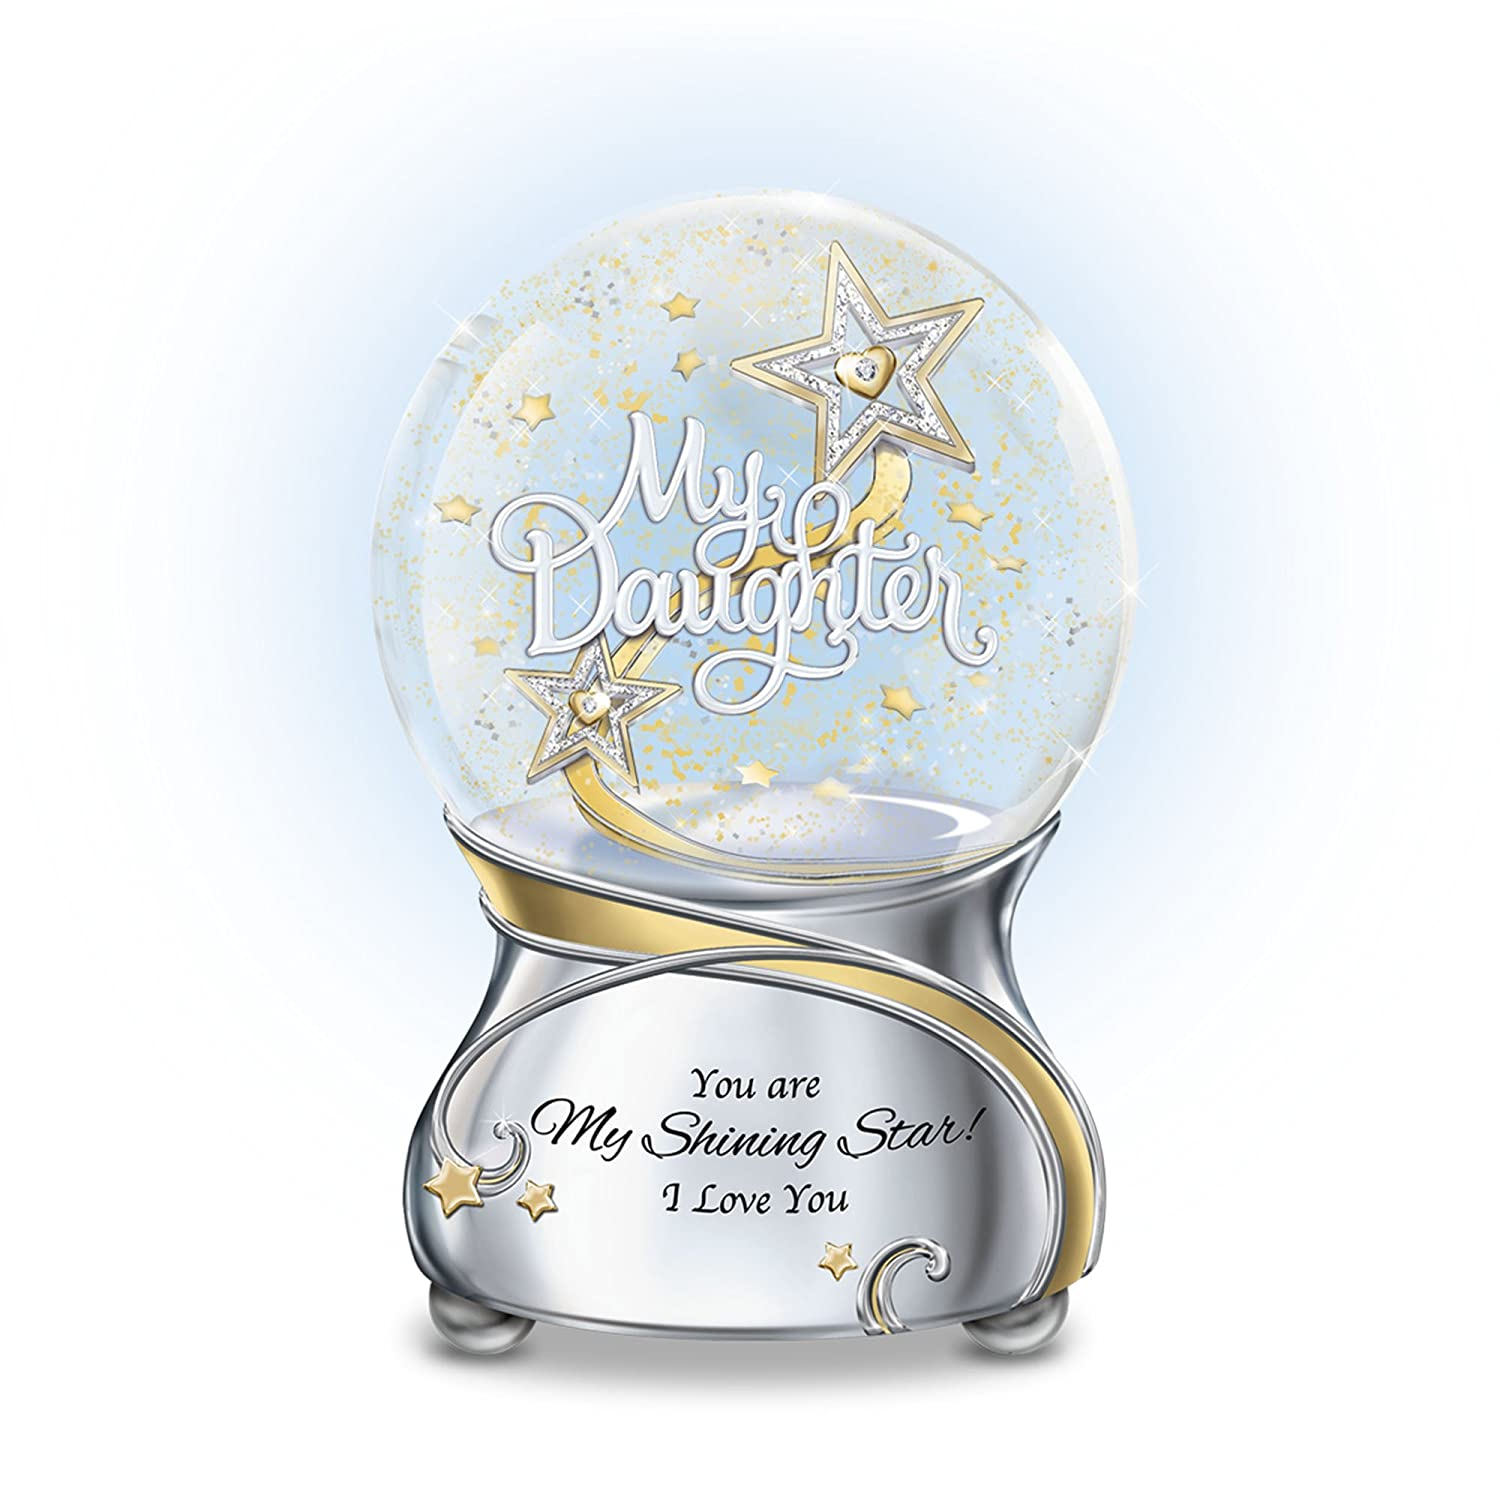 'My Daughter, You Are My Shining Star' Glitter Globe – A unique illuminated glitter globe with Swarovski® crystal hearts, plays: 'You Are So Beautiful'. Poem card. Exclusive to The Bradford Exchange 'My Daughter